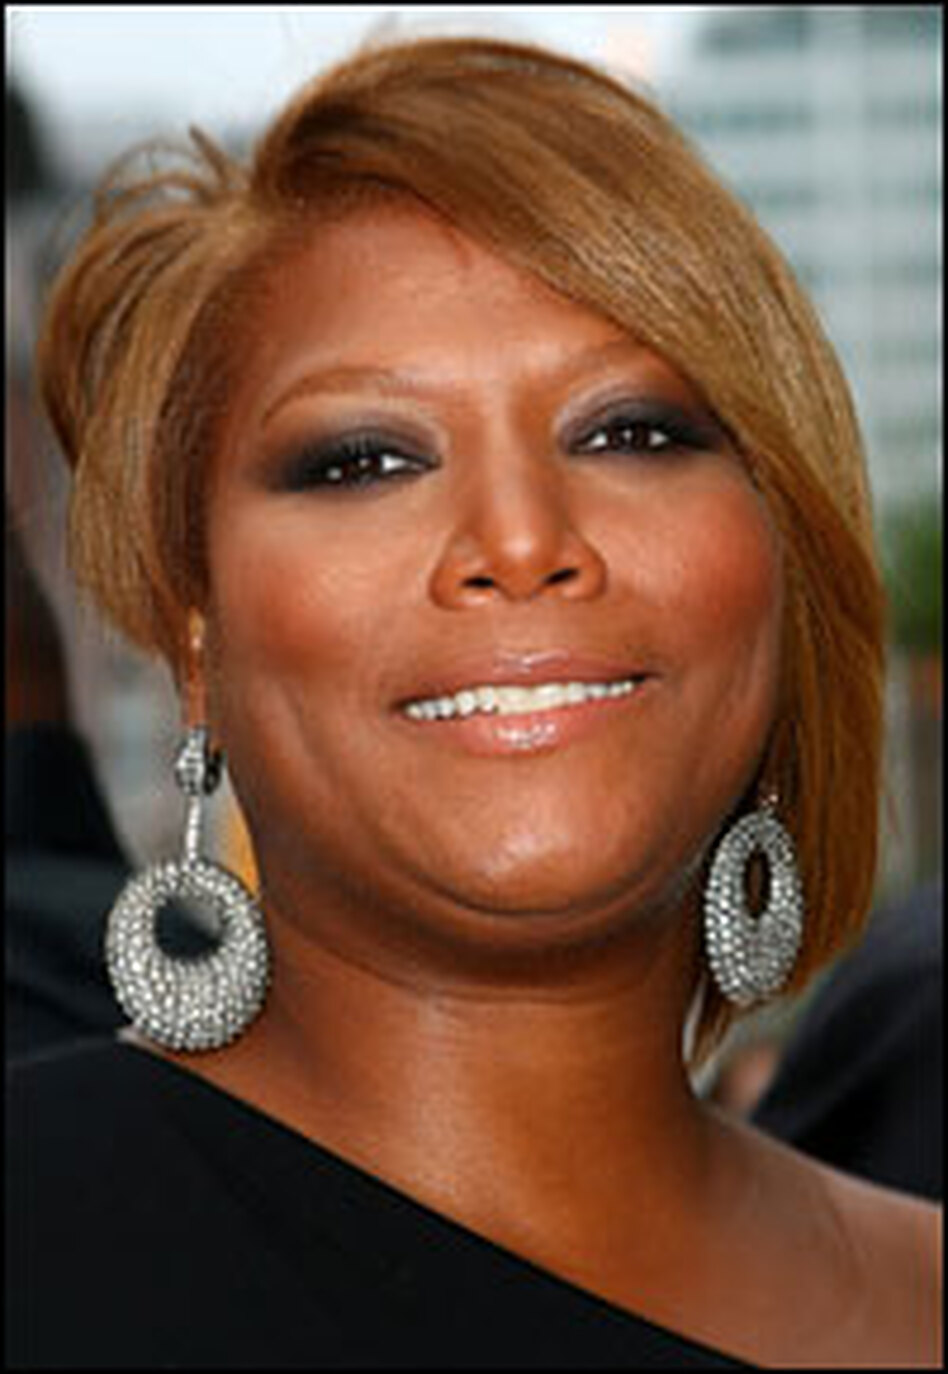 Queen Latifah arrives at the premiere of <em>The Secret Life of Bees</em> at the Toronto International Film Festival last month.